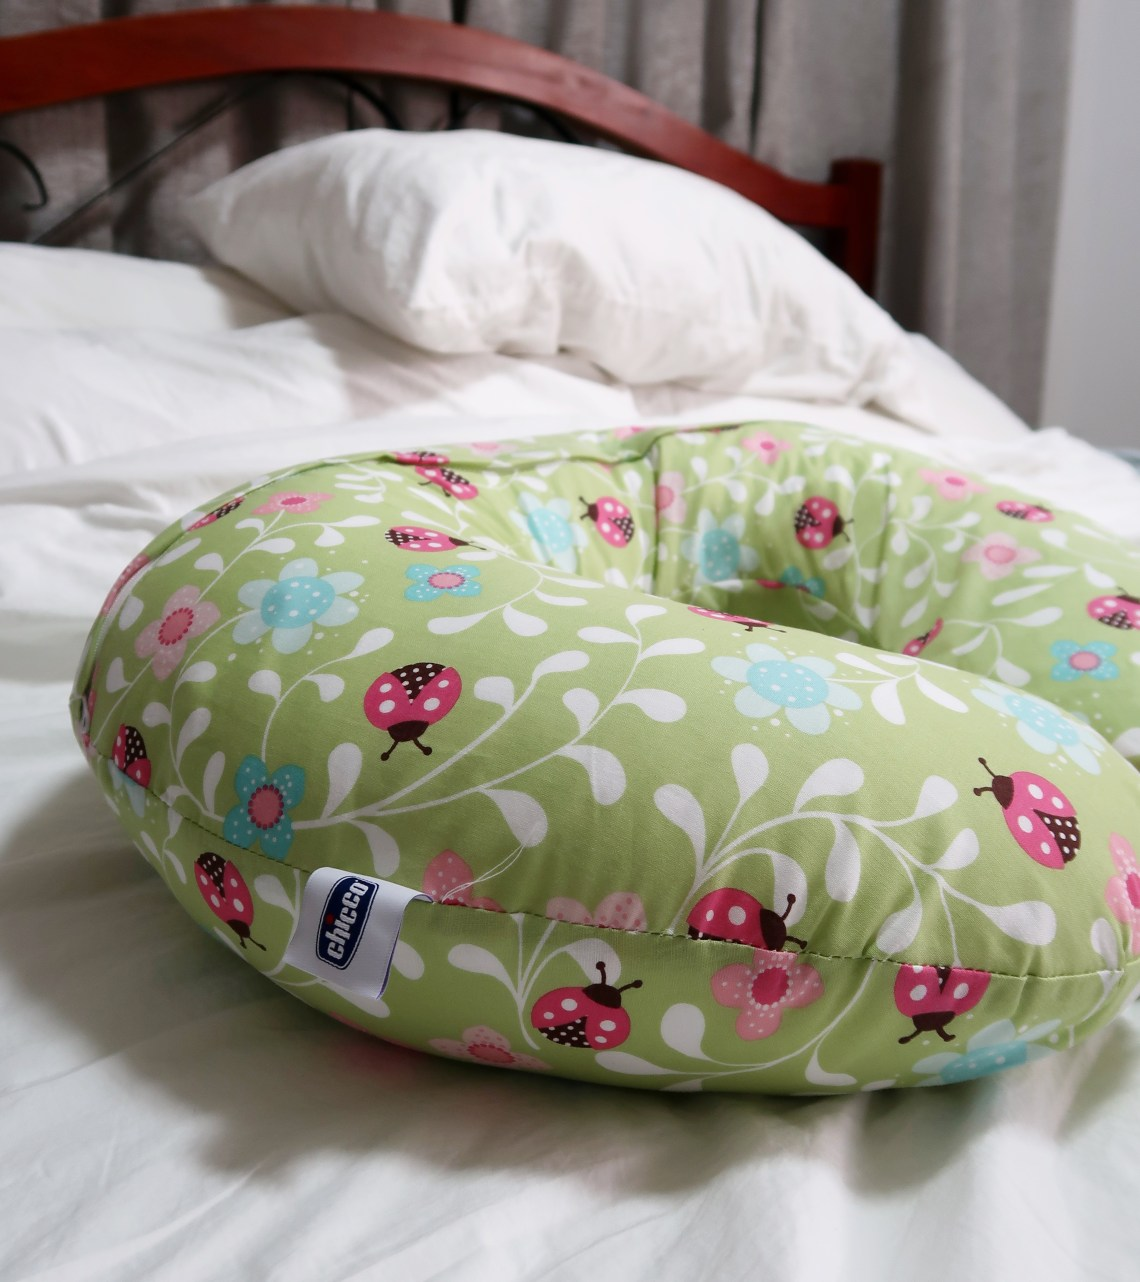 dyosathemomma: Top Breastfeeding Essentials, Chicco Boppy Nursing and Infant Support Pillow